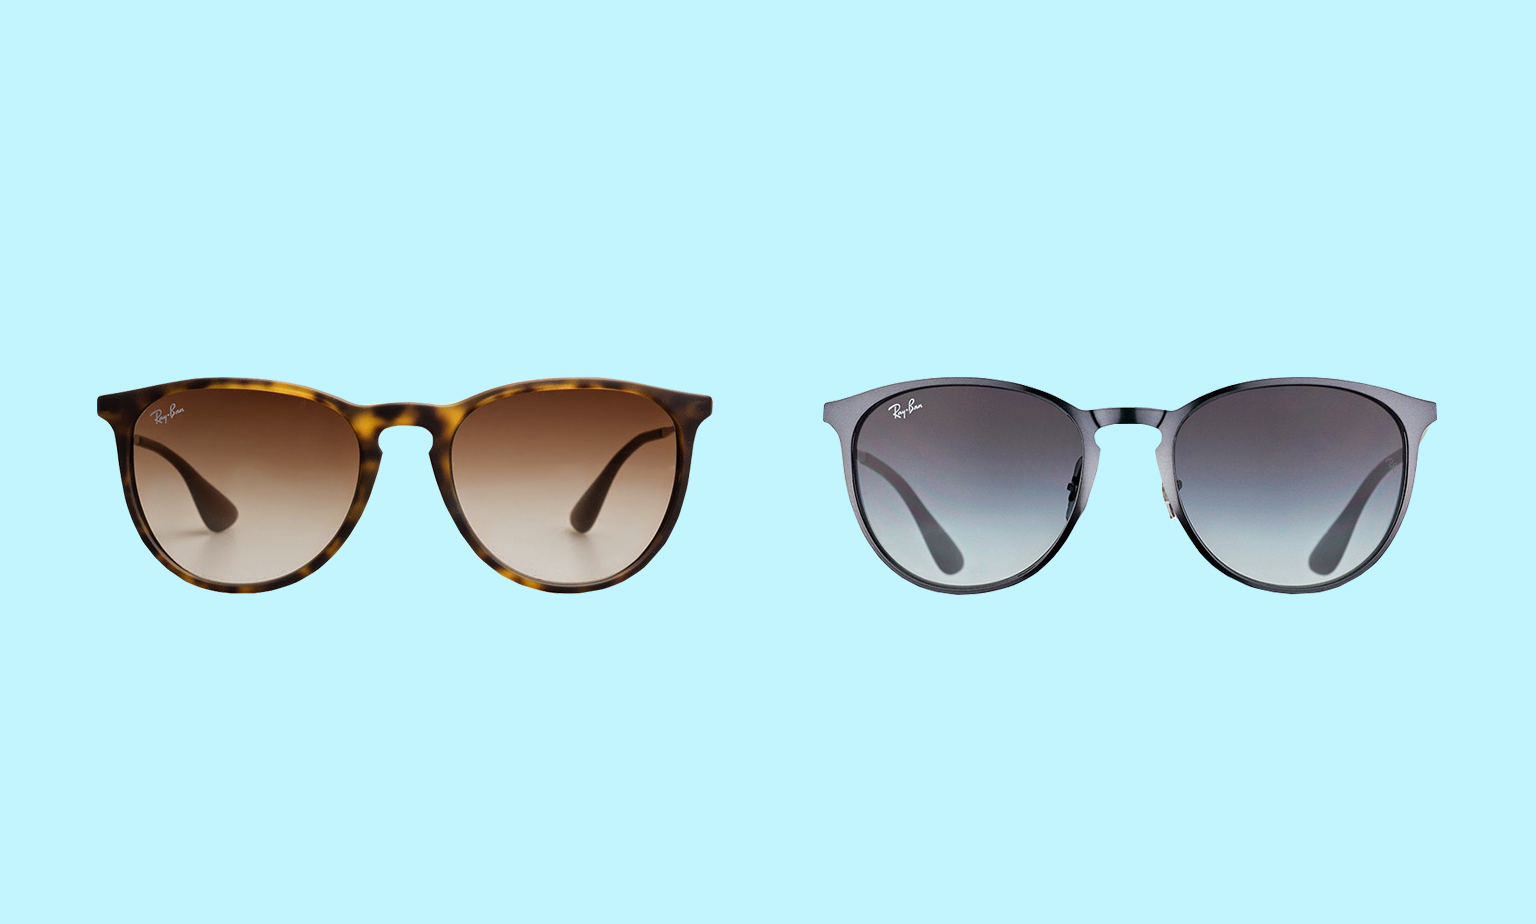 mens designer sunglasses clearance wvx1  New-for-Spring Sunglasses